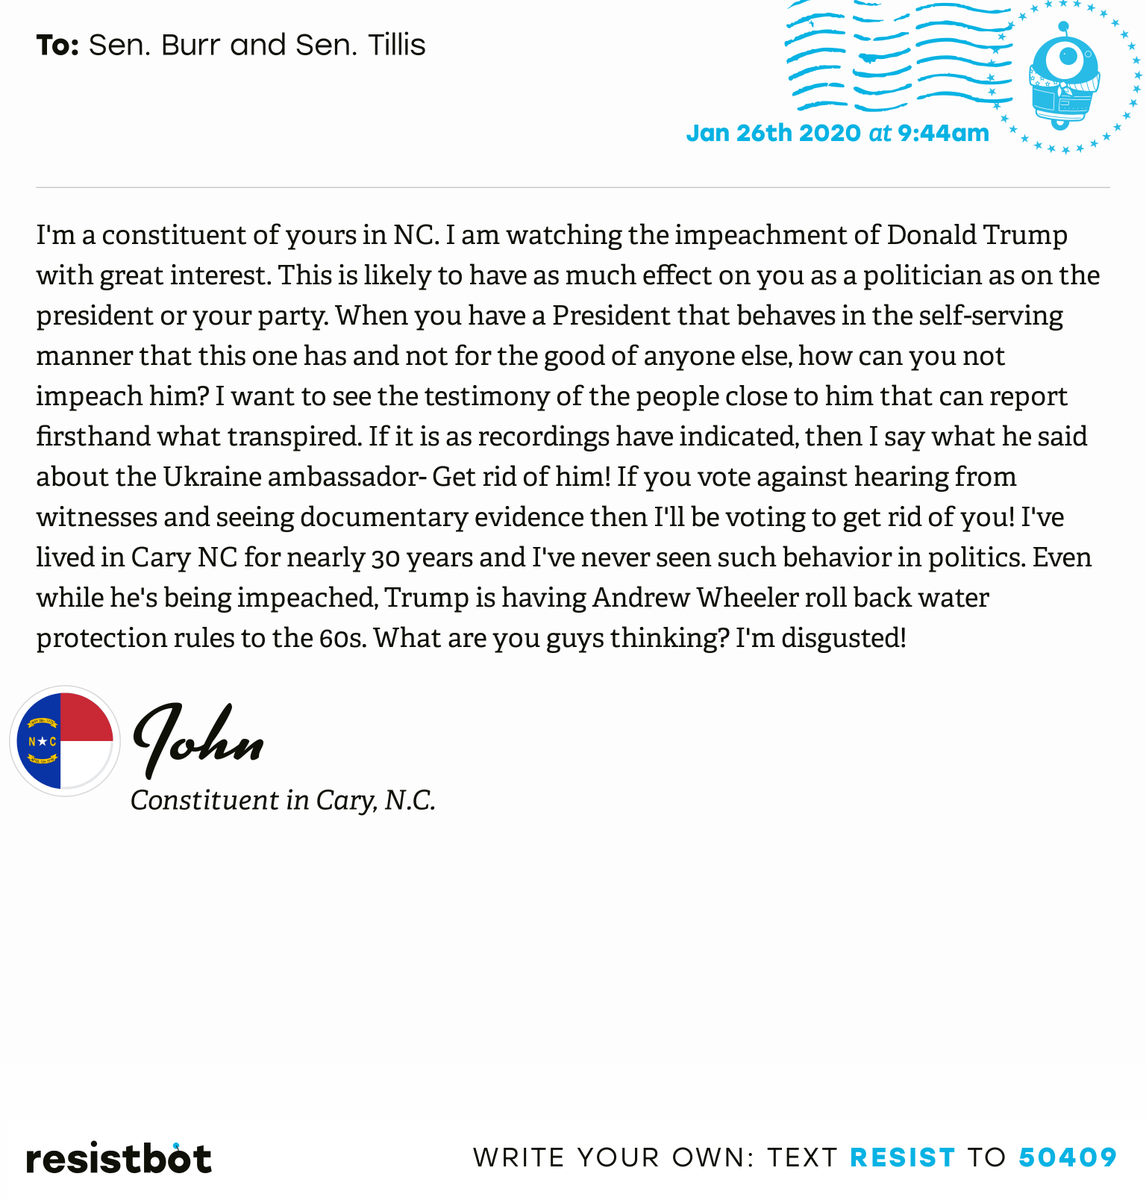 I just delivered this letter from John in Cary, N.C. to @SenatorBurr and @senthomtillis #NC04 #NCpolitics #ImpeachmentInquiry